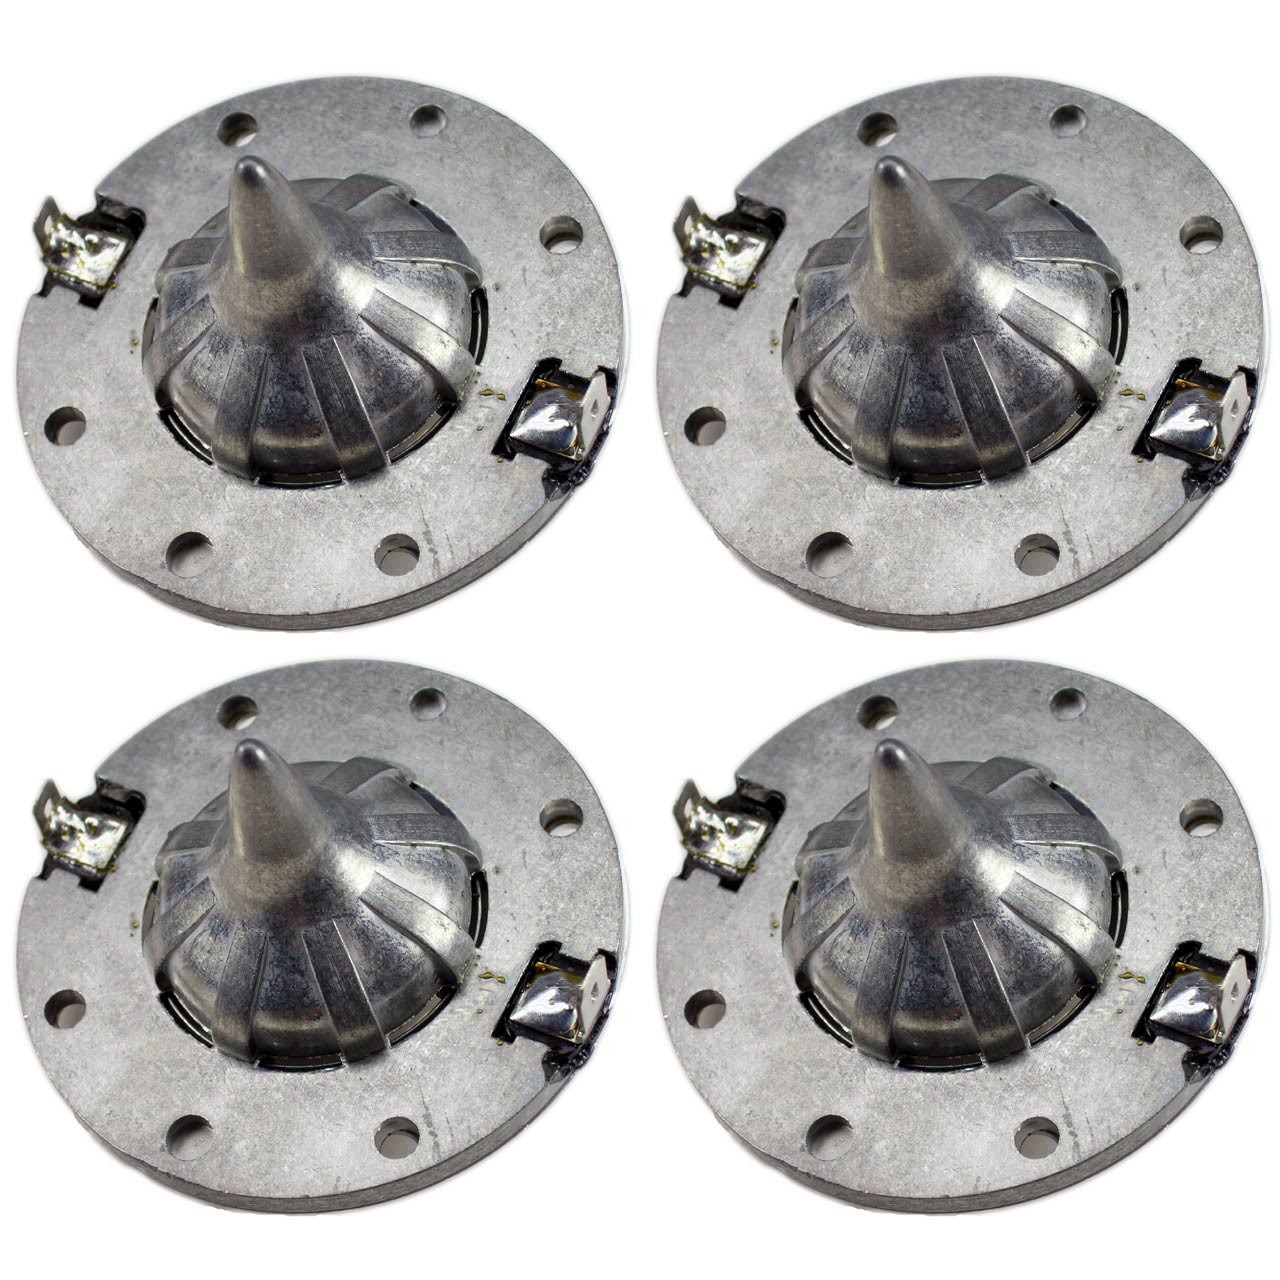 SS Audio Diaphragm for JBL 2408 Diaphragm (4 PACK)